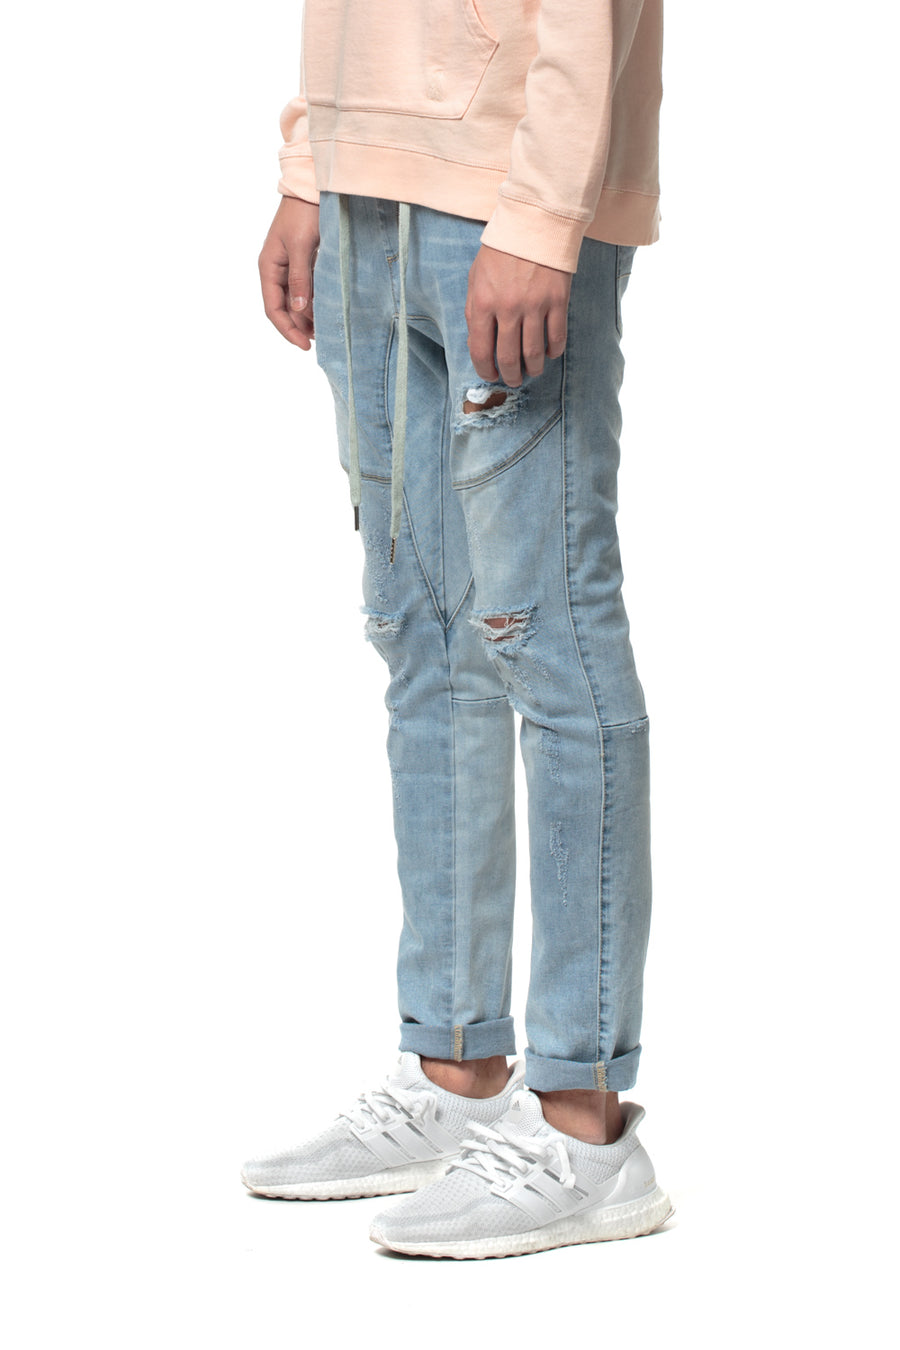 kuwalla tee denim trouser